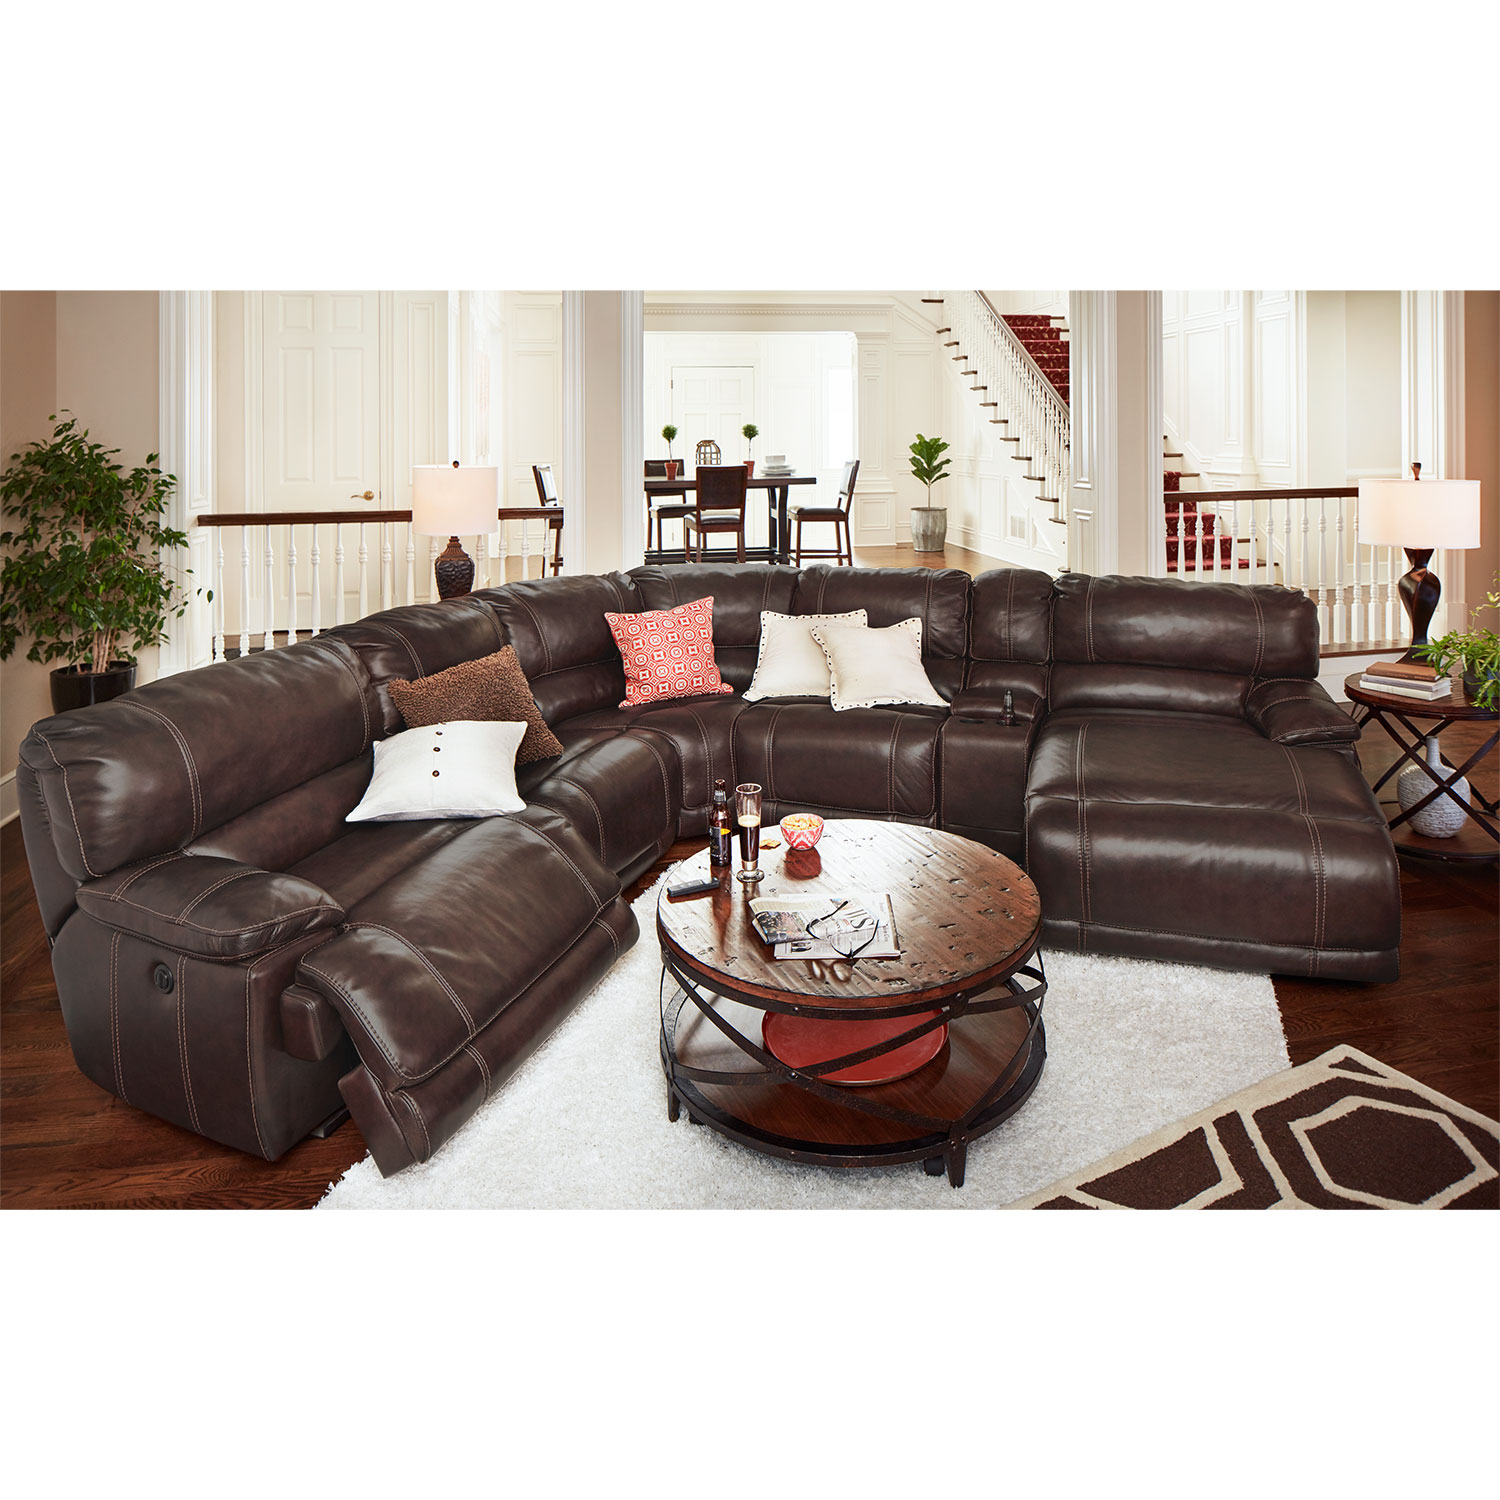 gdf pillow set leather chair lounge studio curved products laguna chaise brown